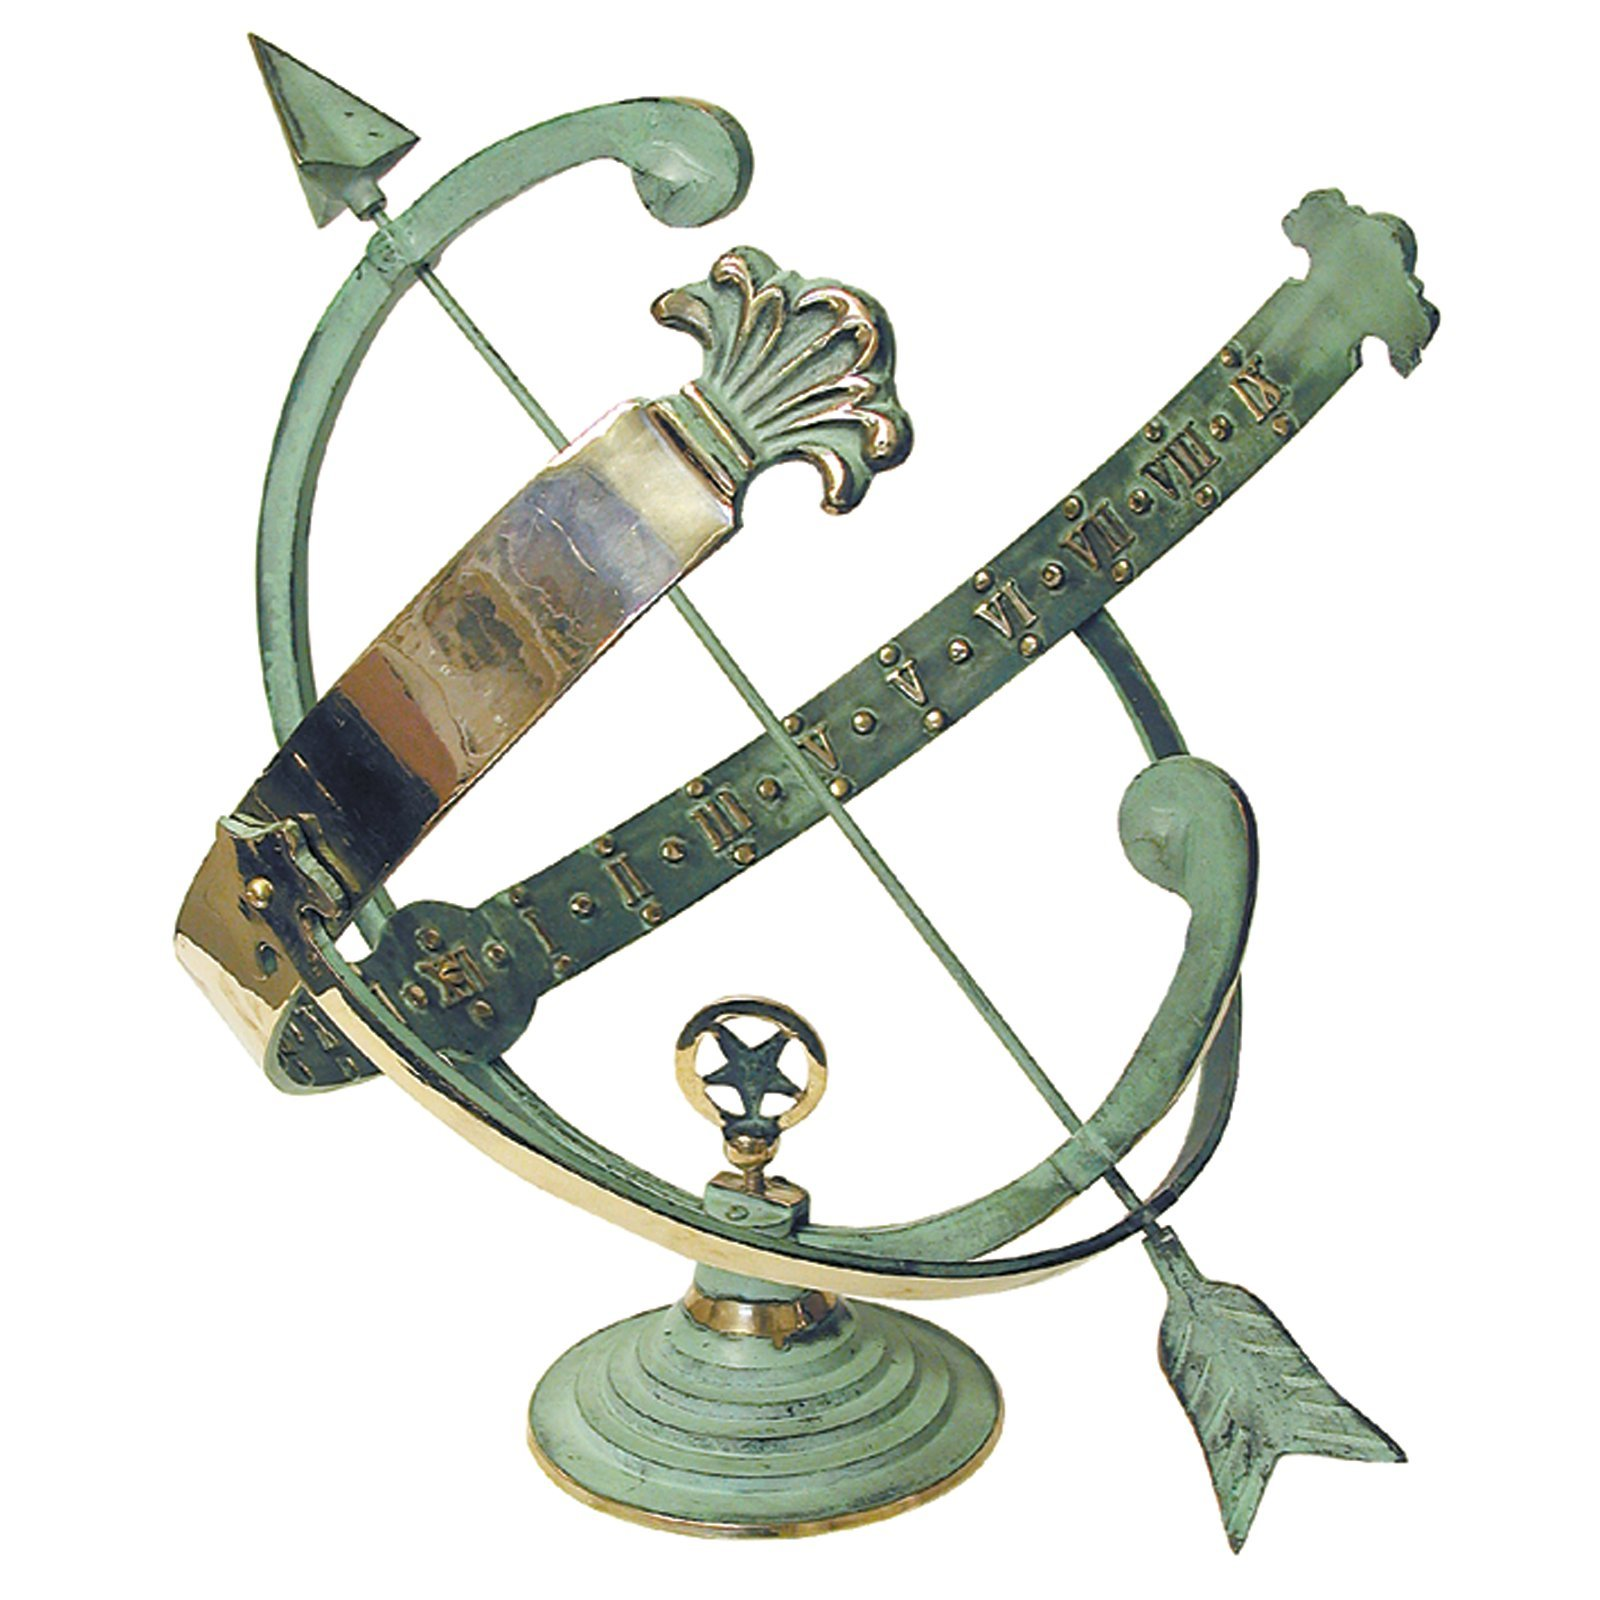 Rome RM1336 Polished Brass 18-Inch Diameter Armillary Sundial by Rome Industries